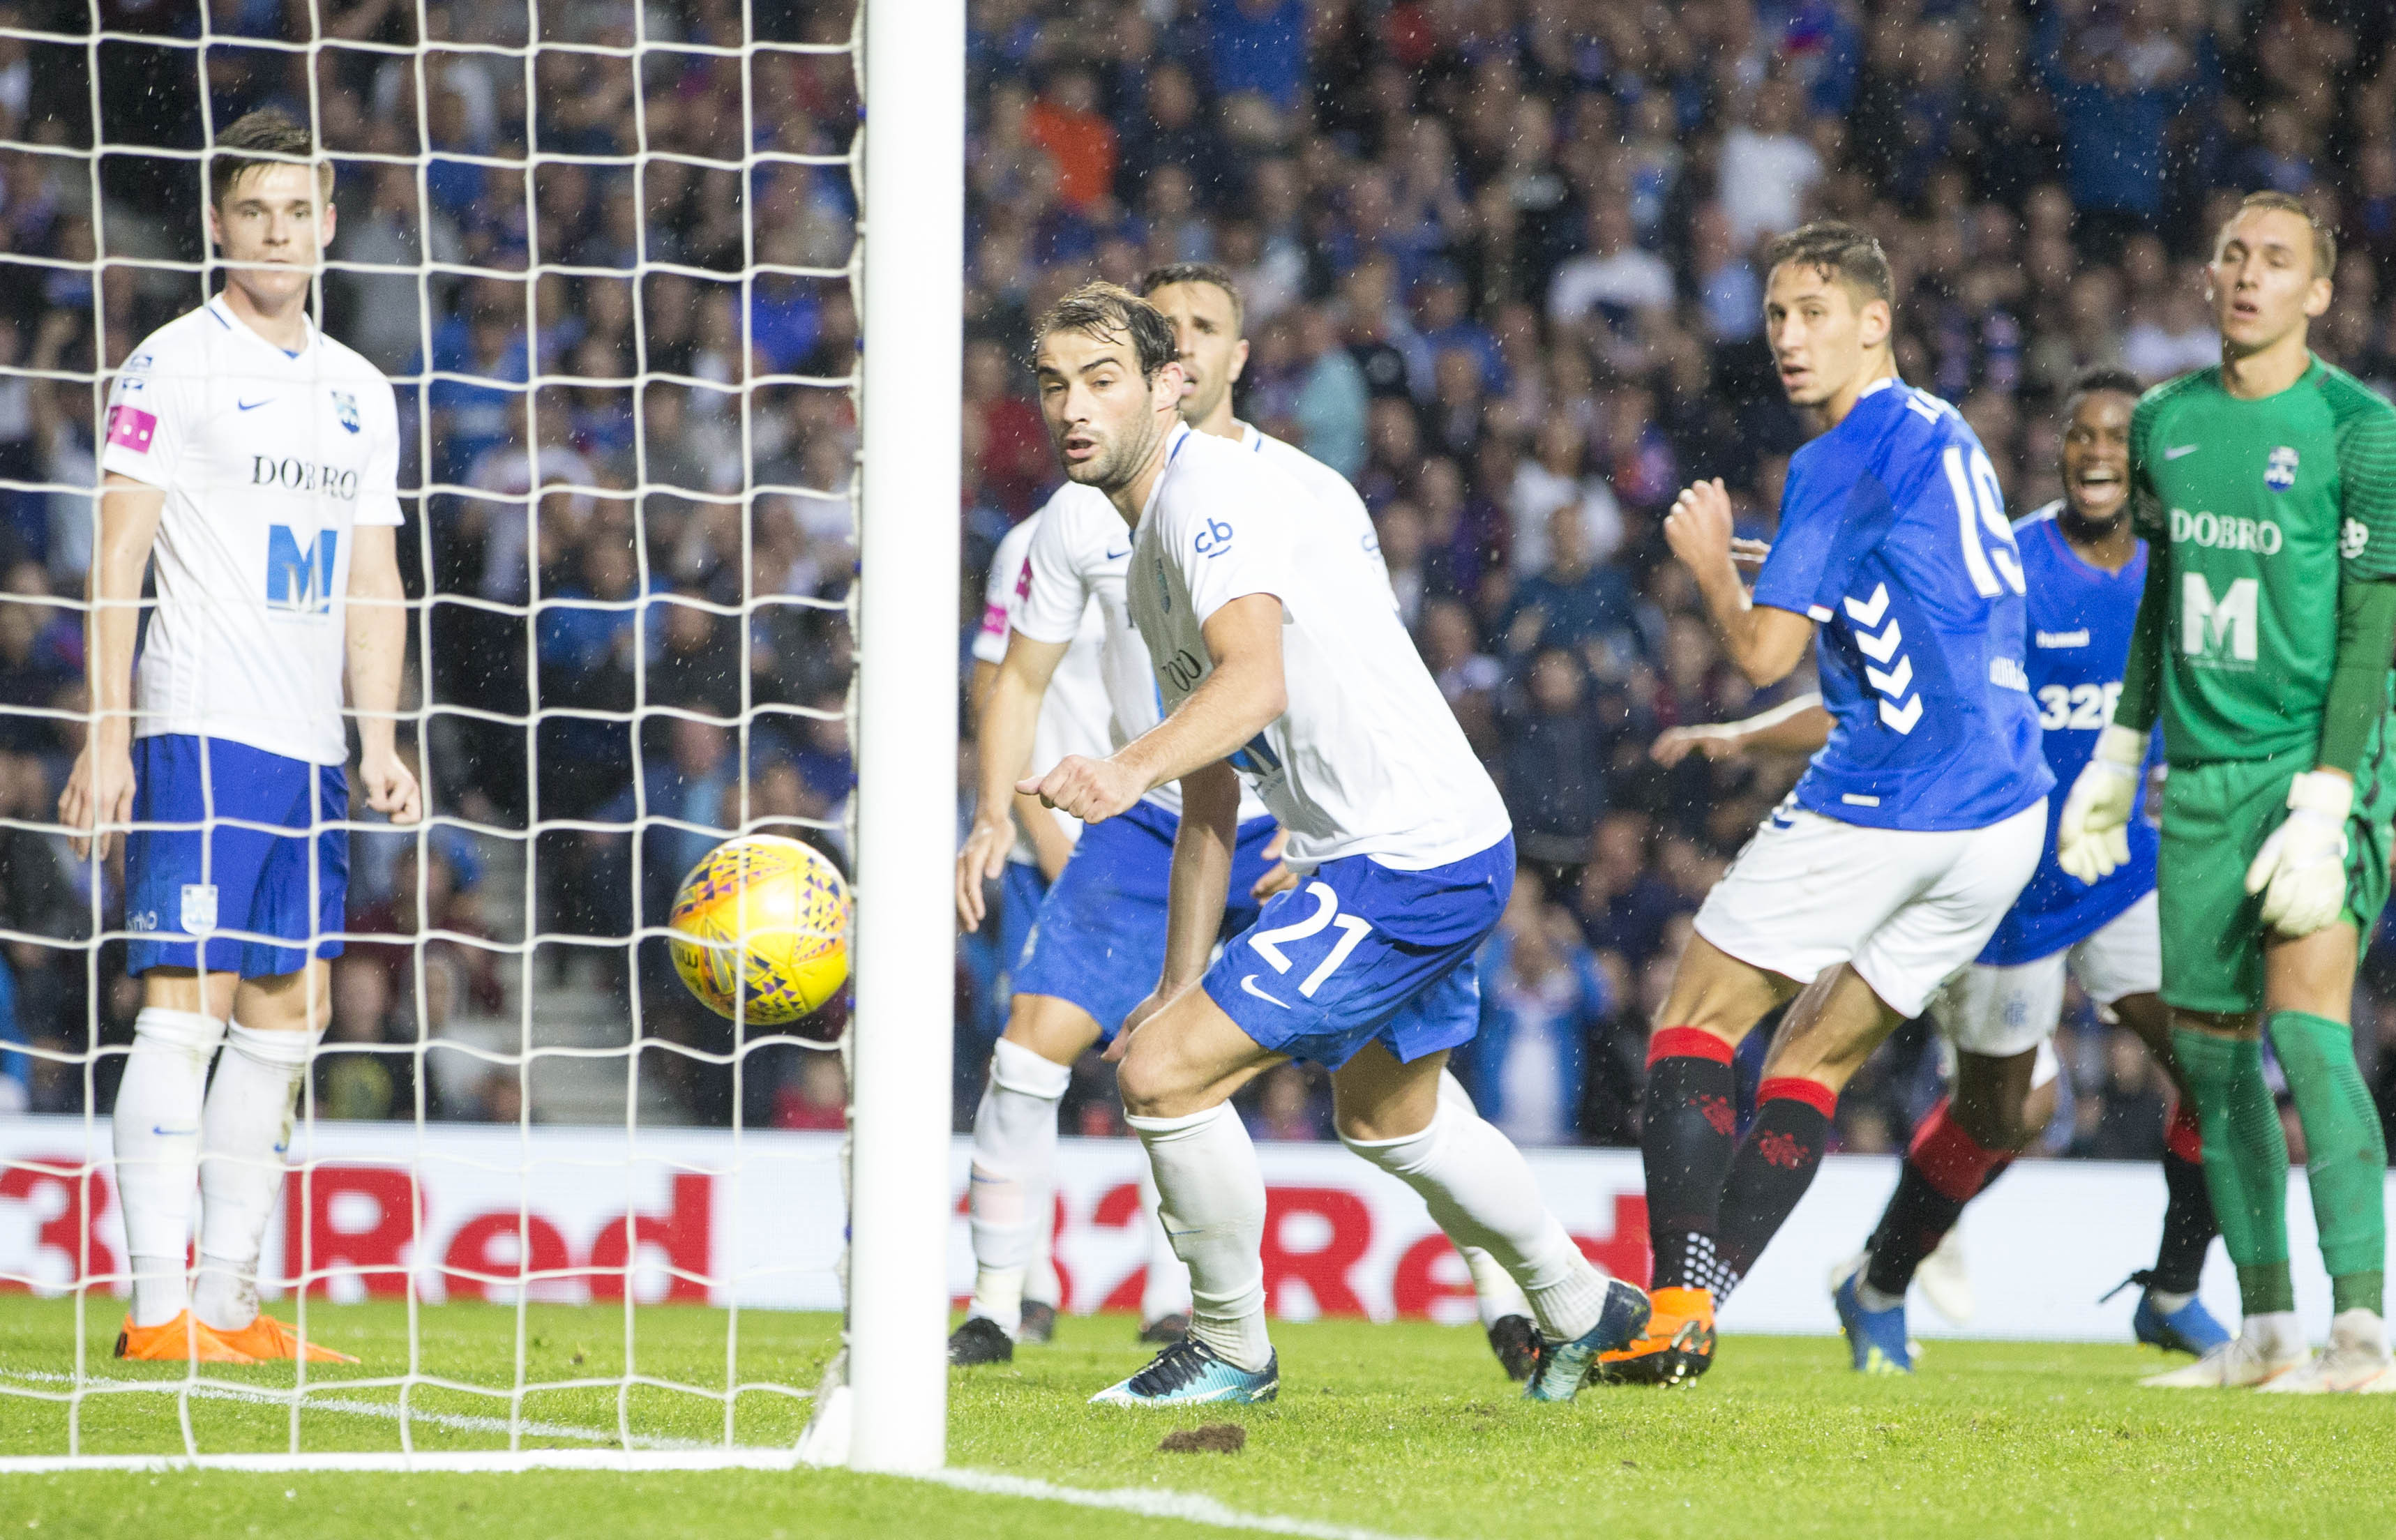 Katic watches on as he scores his first Rangers goal. Image: PA Images